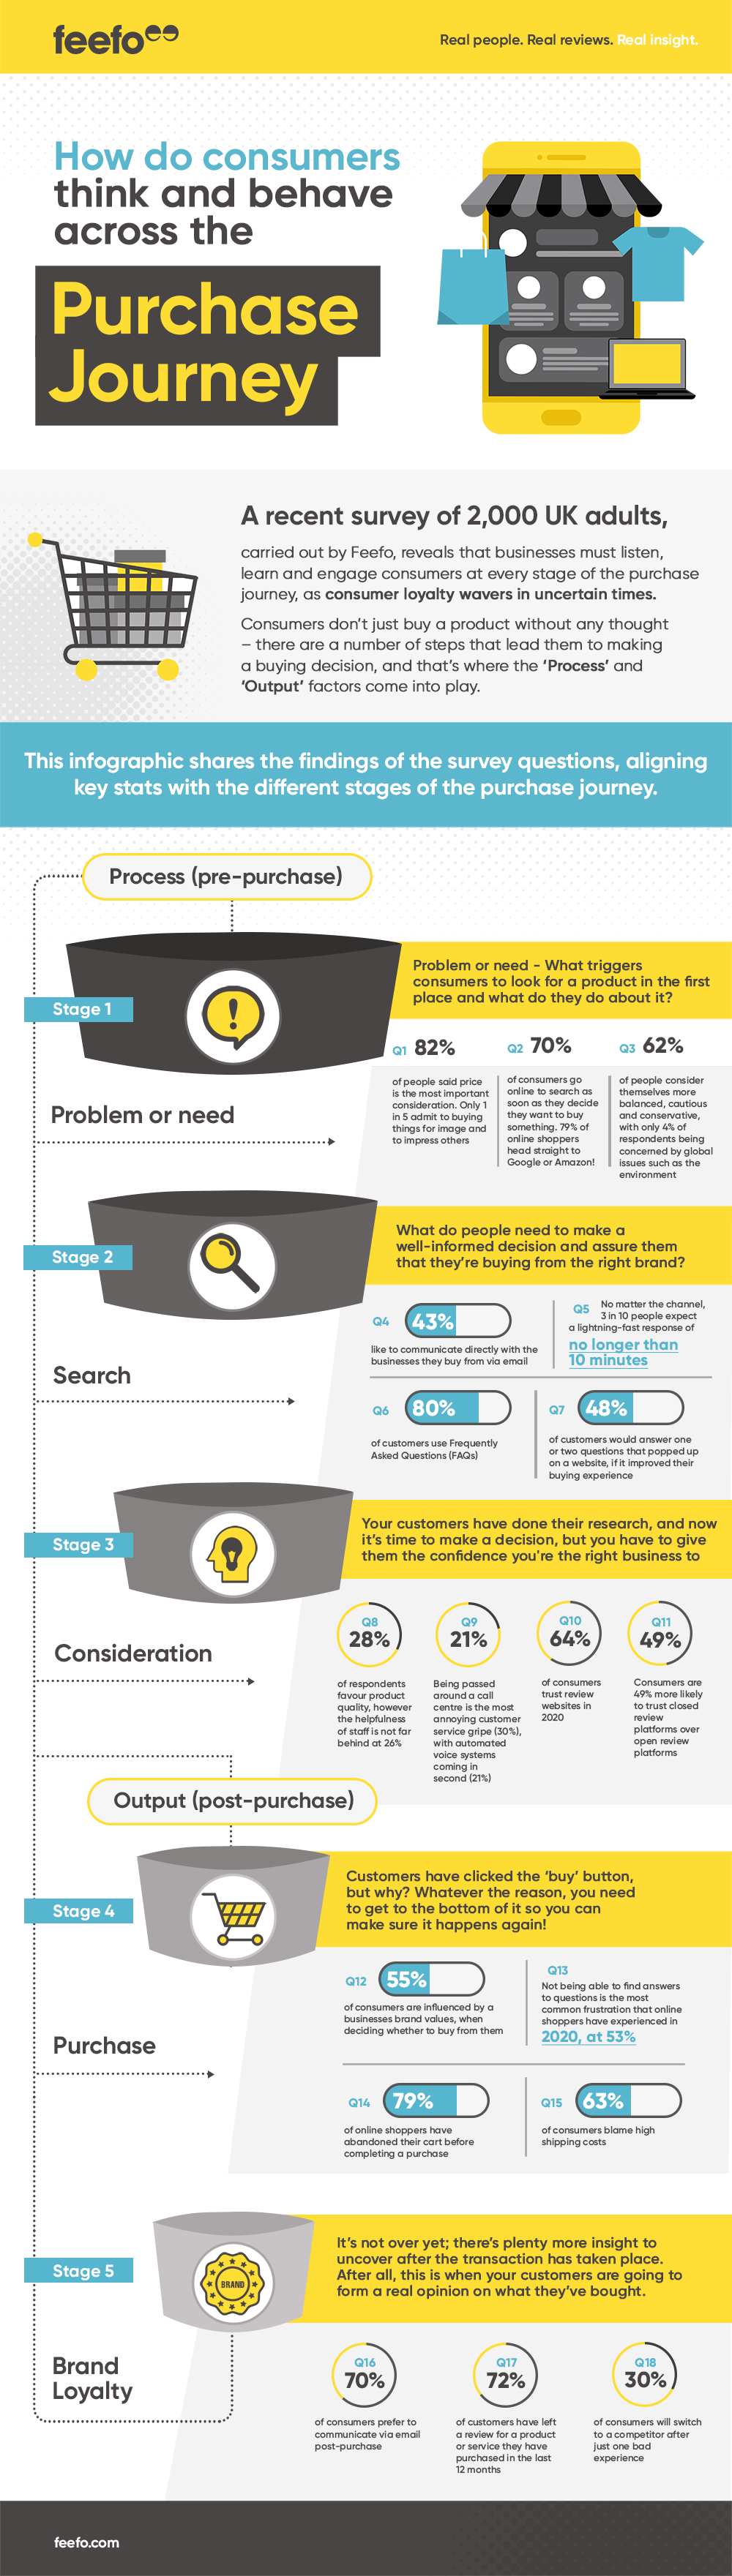 How do consumers think and behave across the purchase journey? [Infographic]